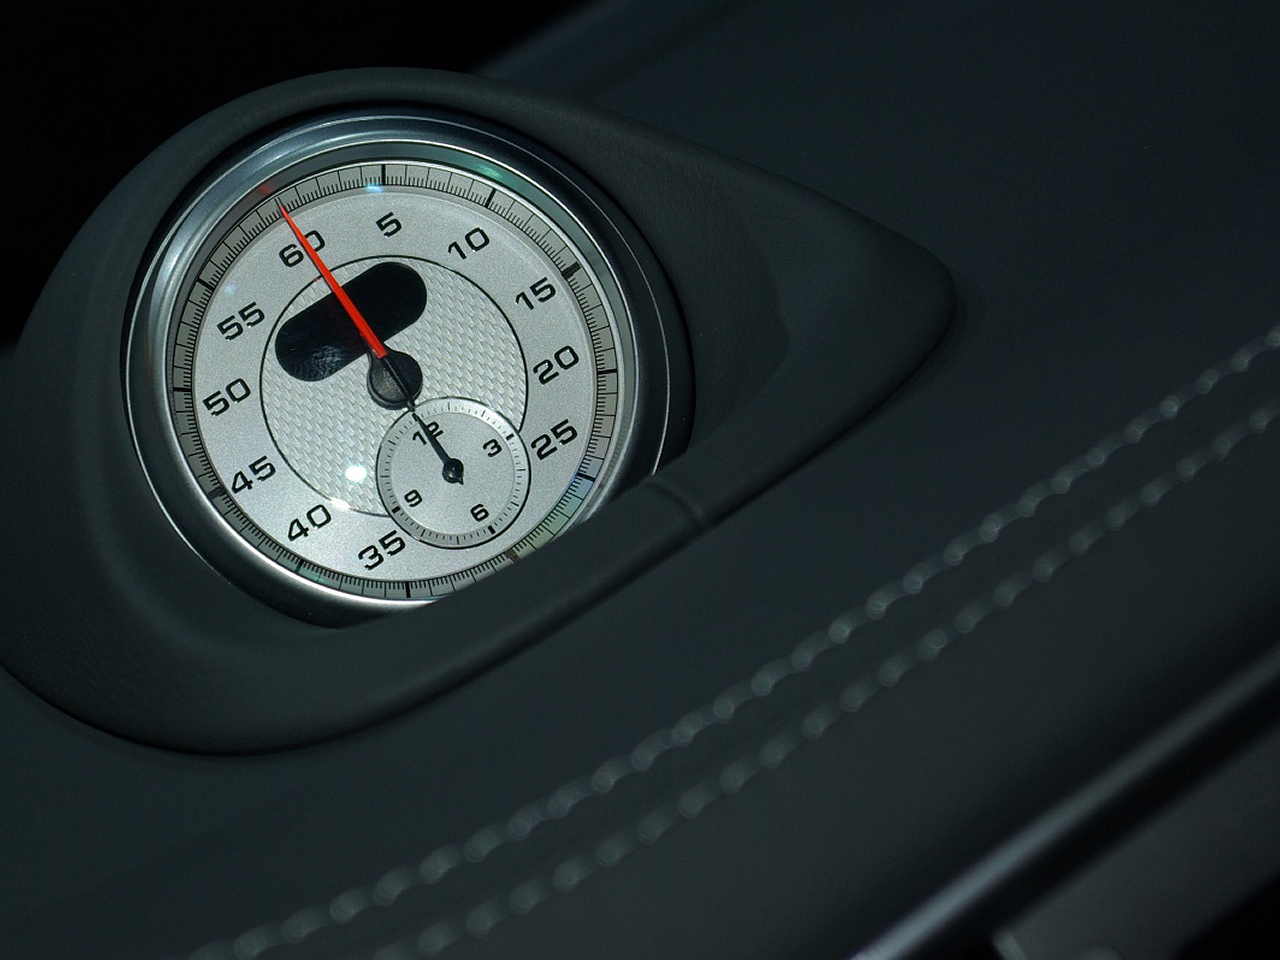 Porsche 'Chrono' Stop Watch